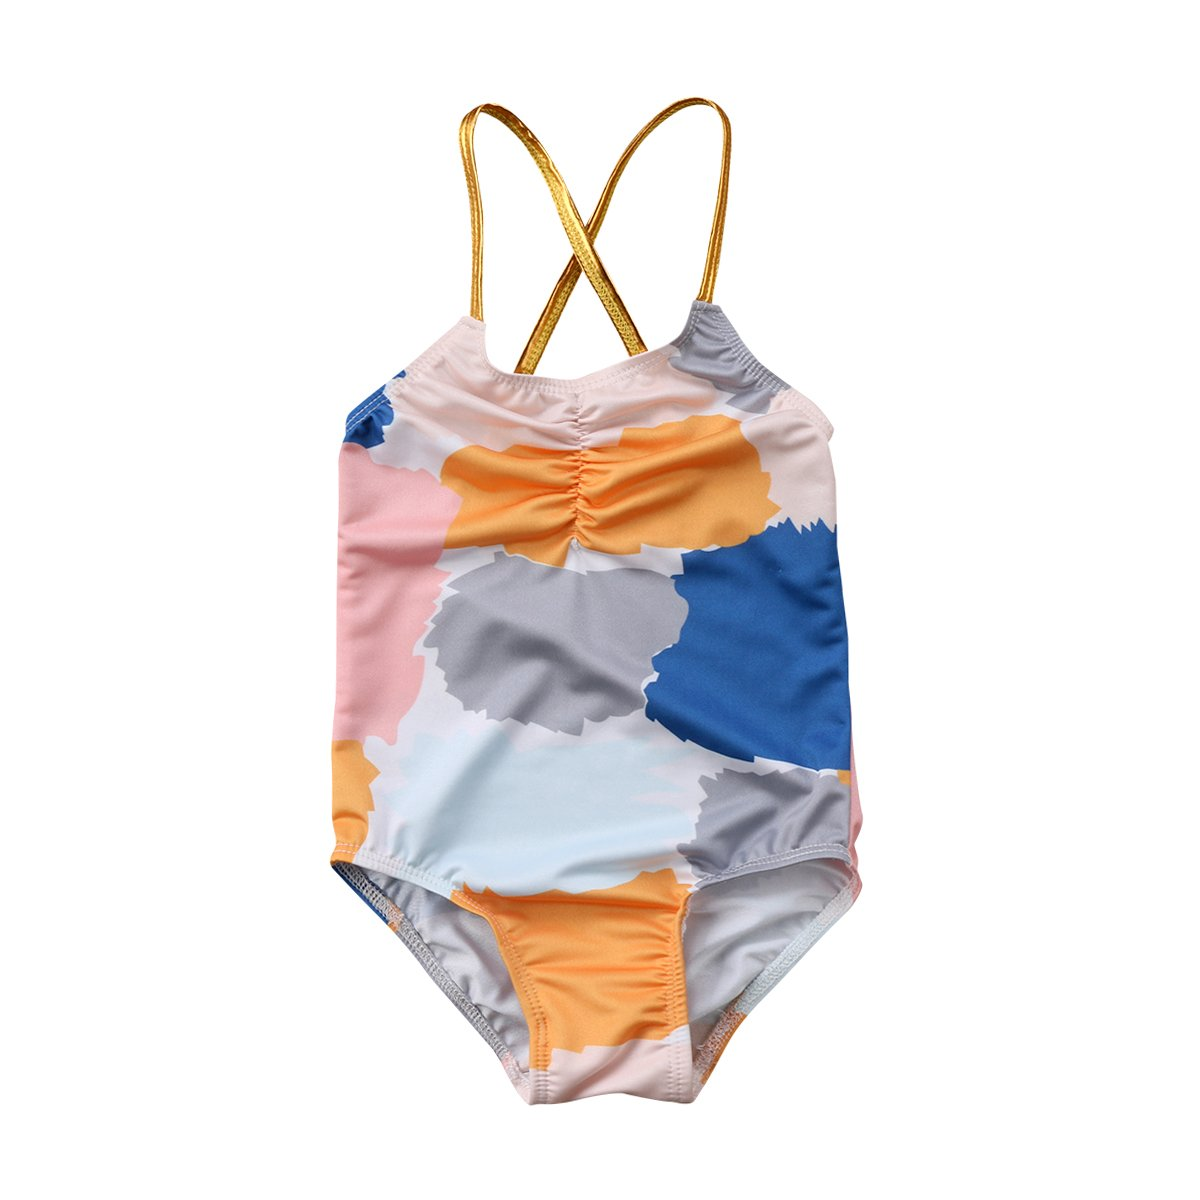 39b6cb2cd8246 Amazon.com: Baby Girl Colorful Swimsuit Rainbow Swimwear Gold Halter Bathing  Suit One-Piece Bikini Beach Wear: Clothing